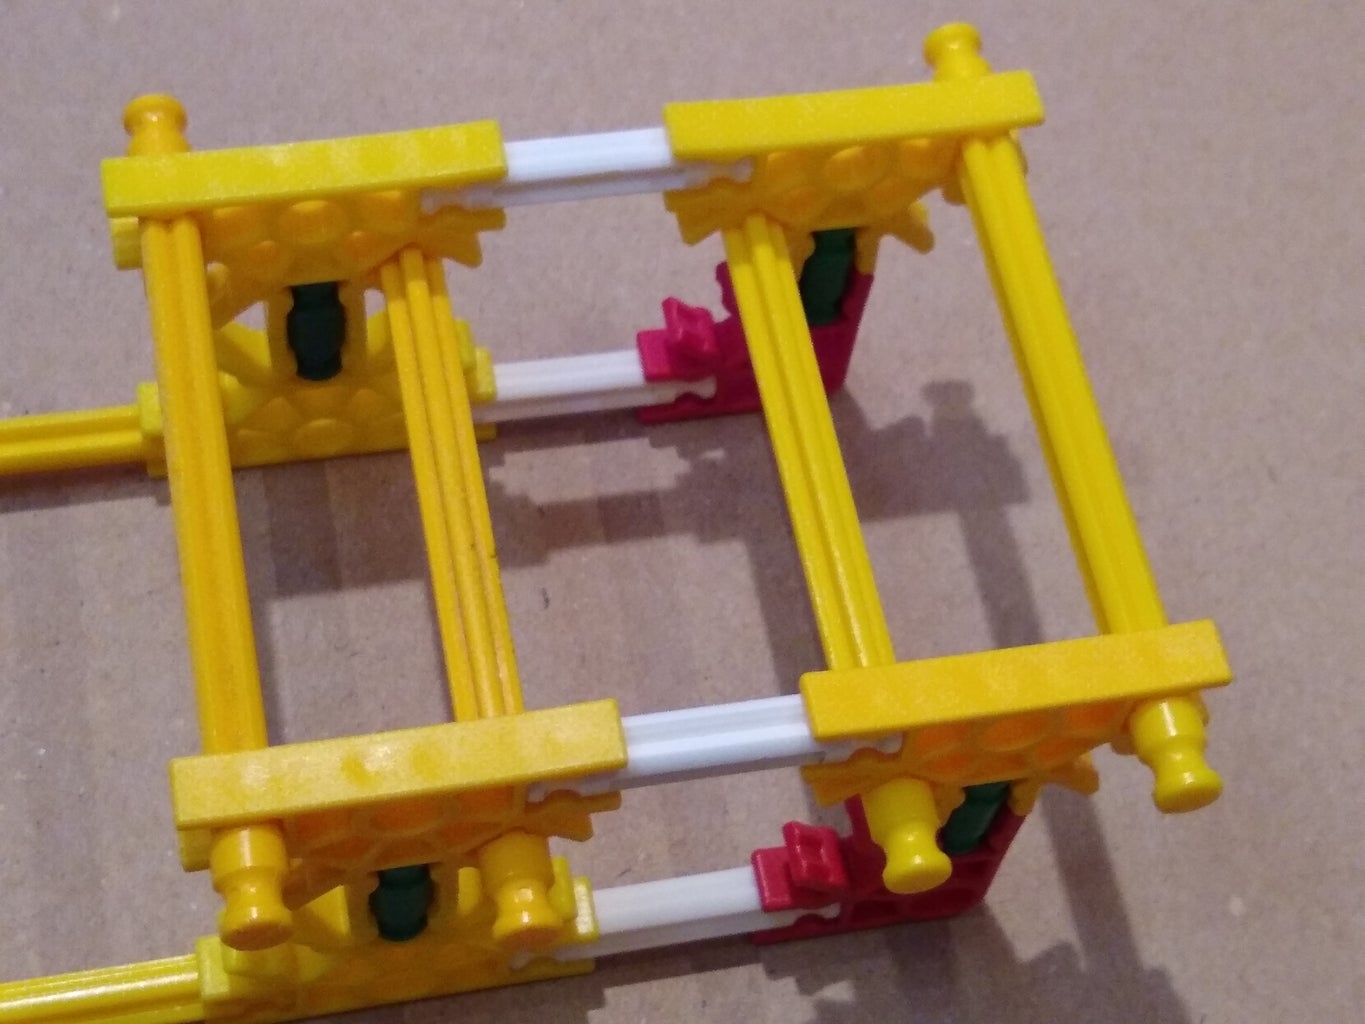 Build the Bobble Carriage and Attach to the Motor-Wheel Assembly